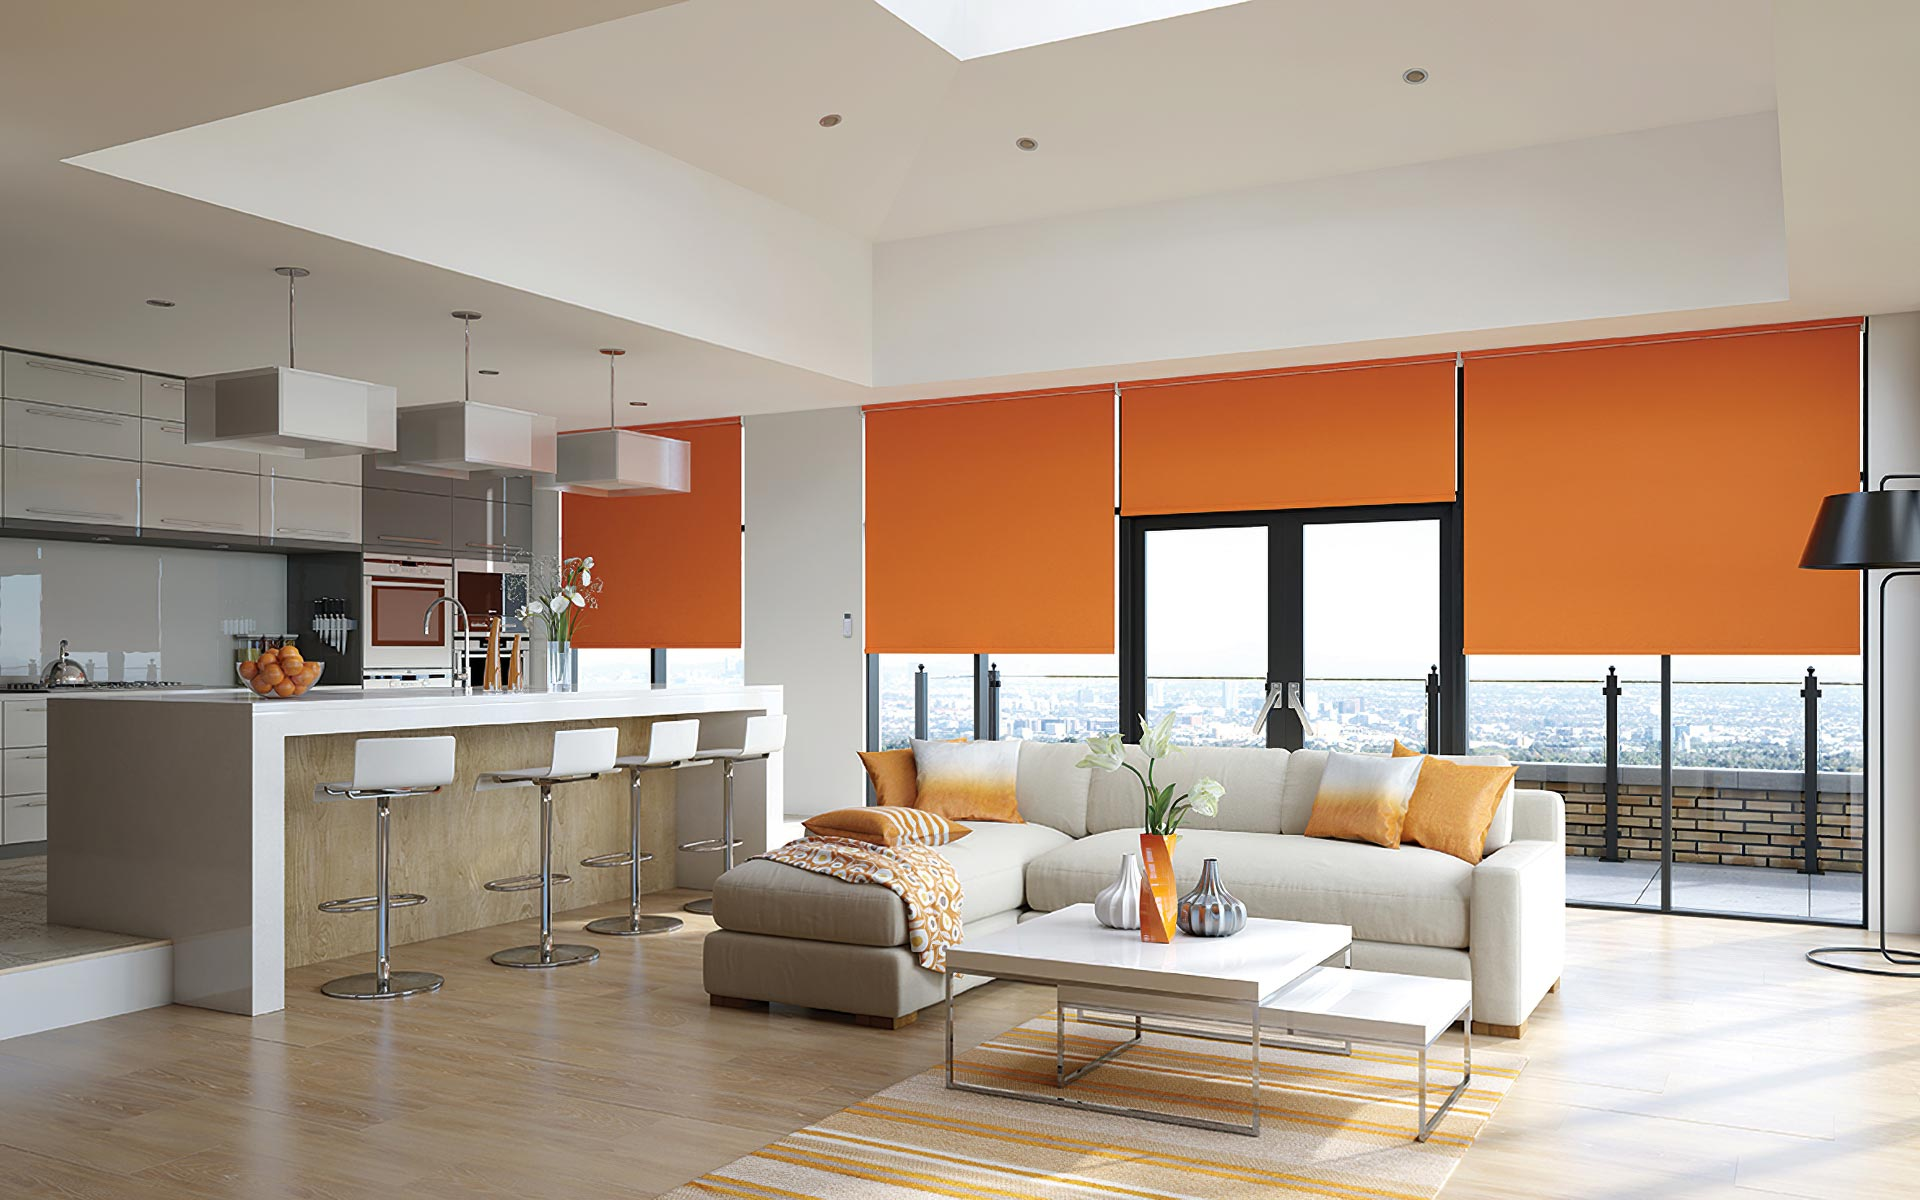 Motorised Blinds and Curtains for your home